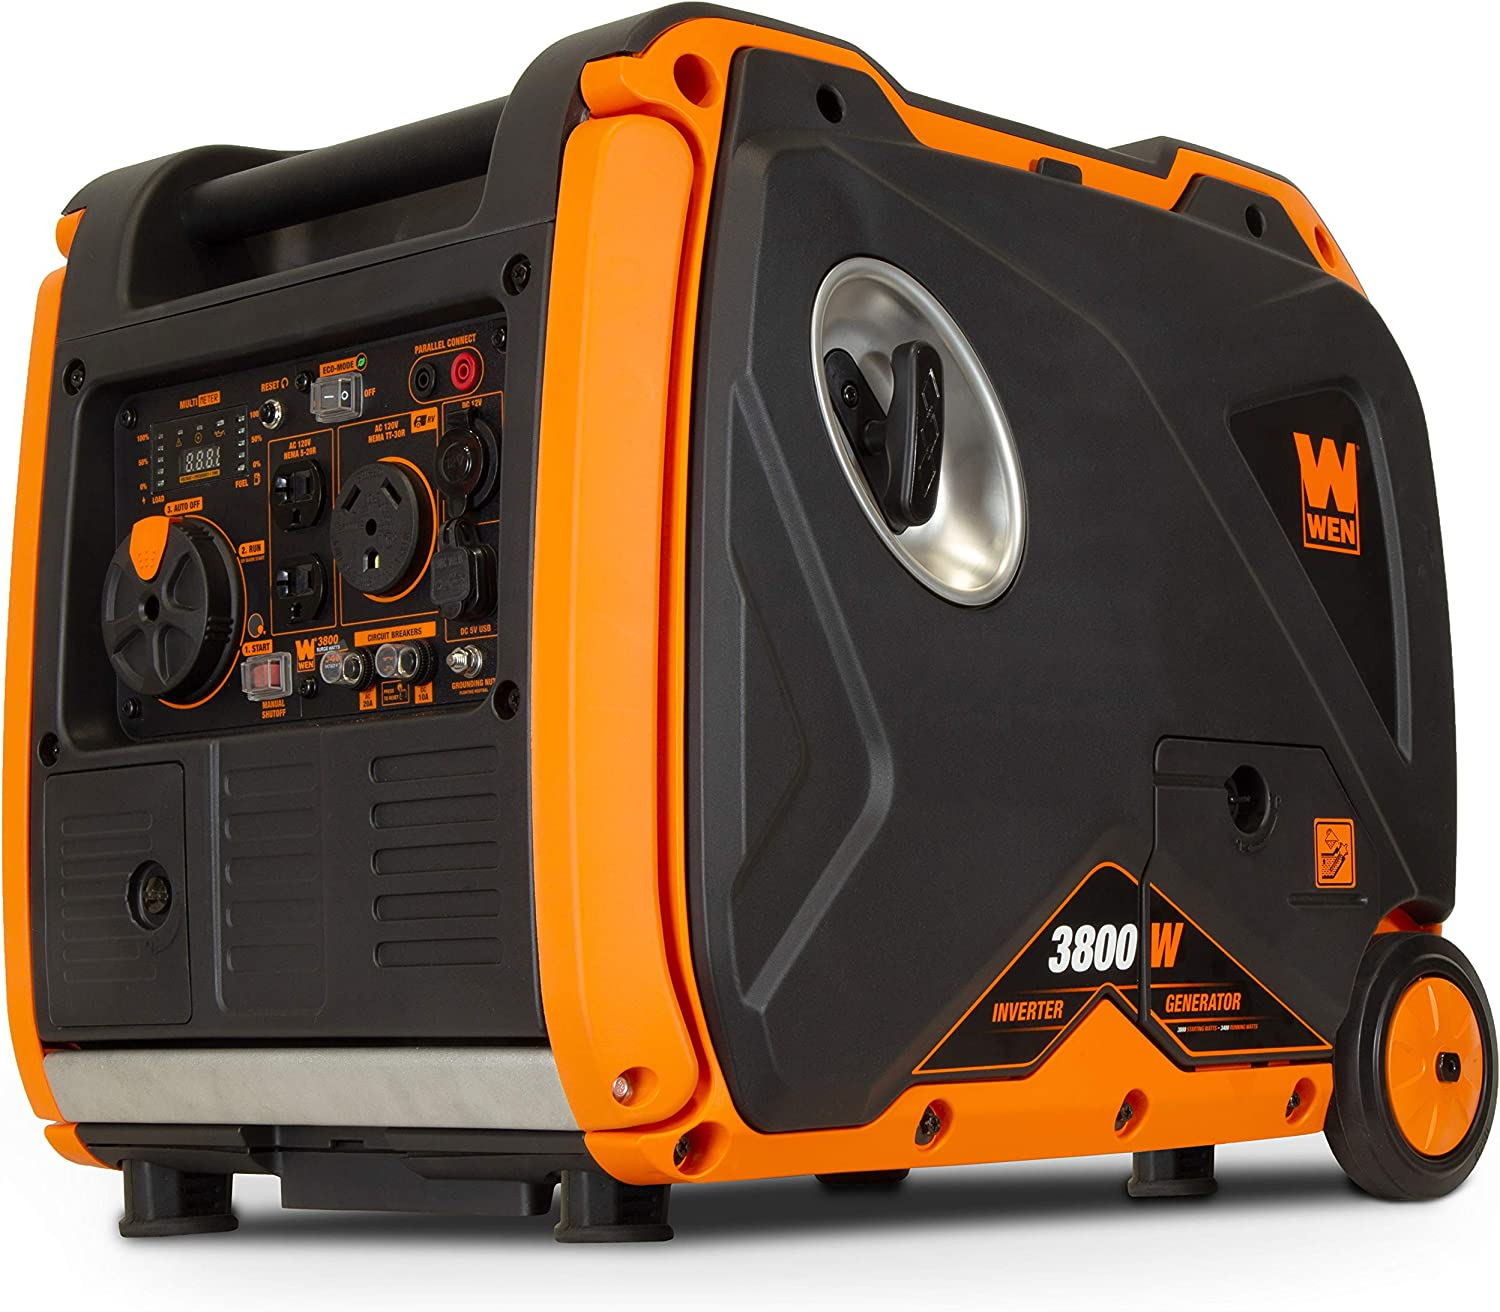 Top 10 Best Generators For Home Use Review (2021) 4